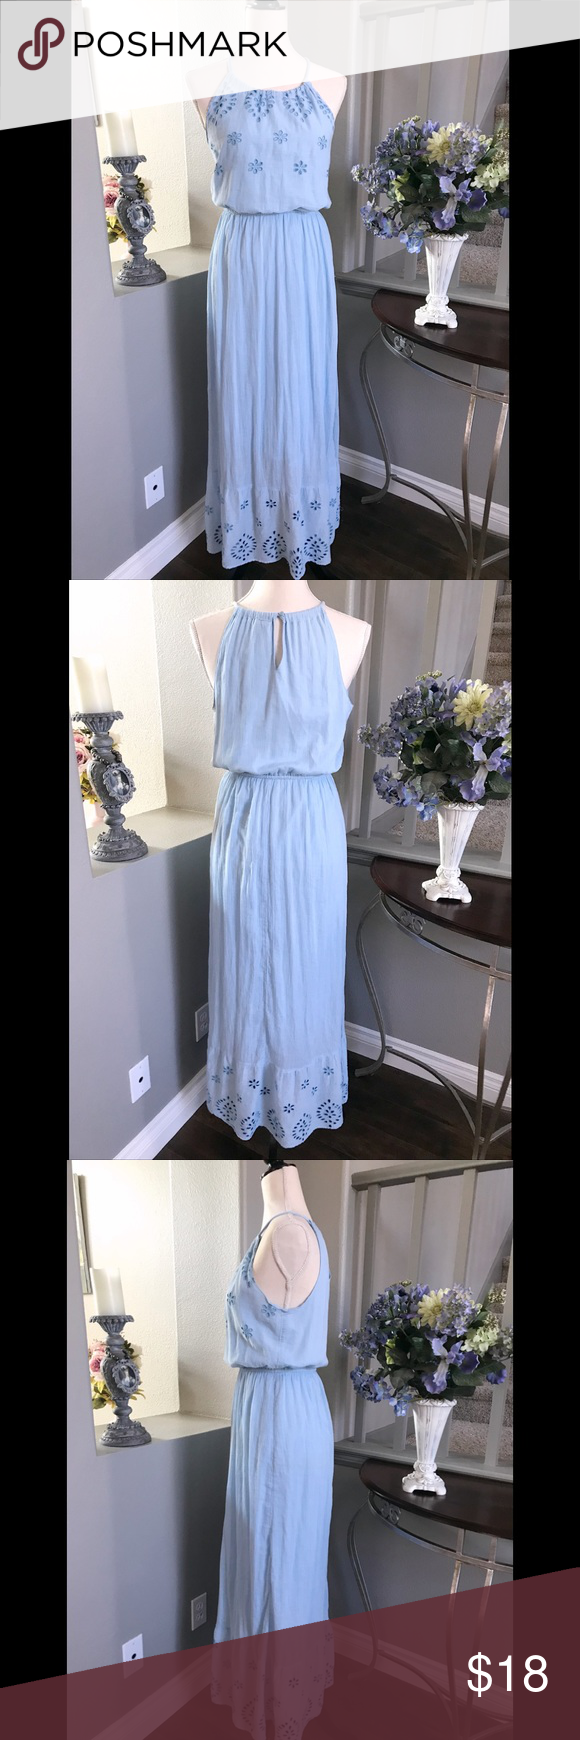 Womenus old navy long blue maxi dress size s in my posh